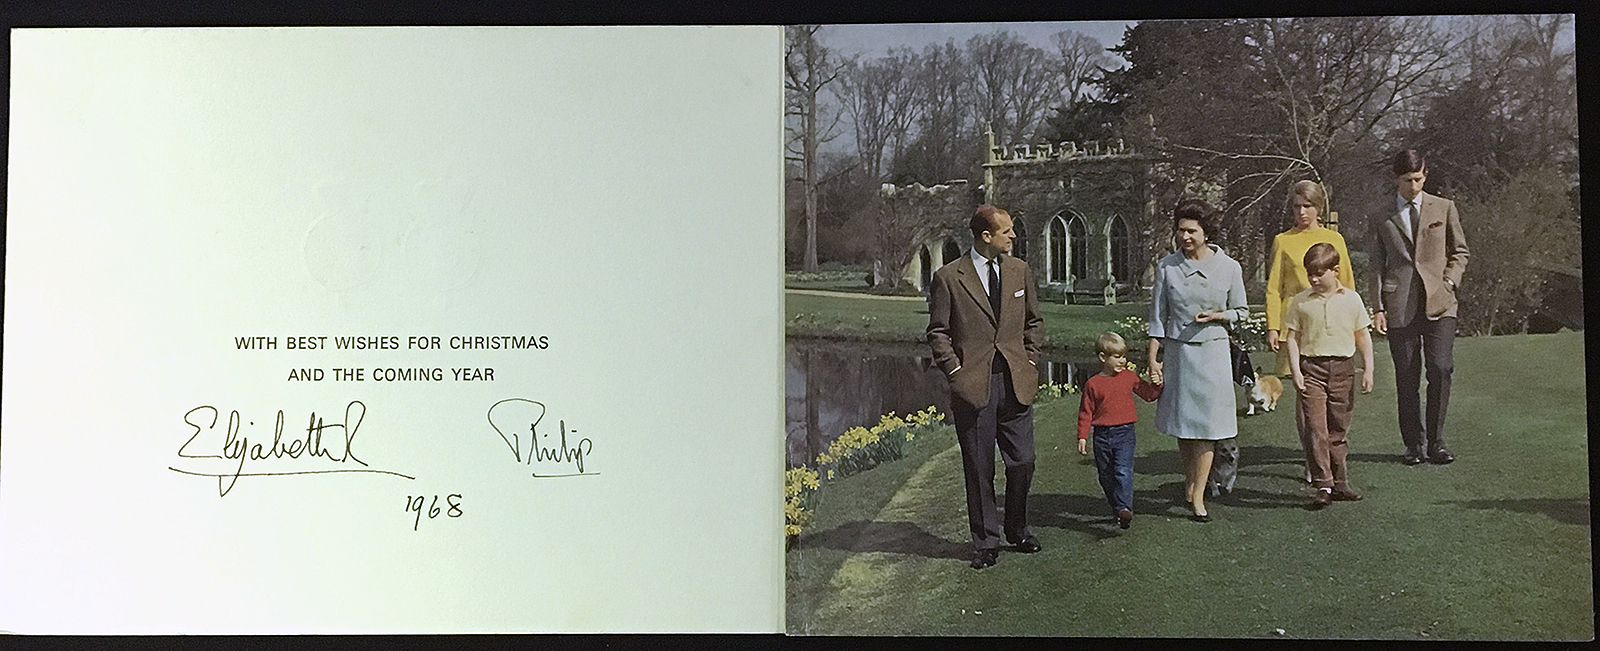 Royals Christmas cards